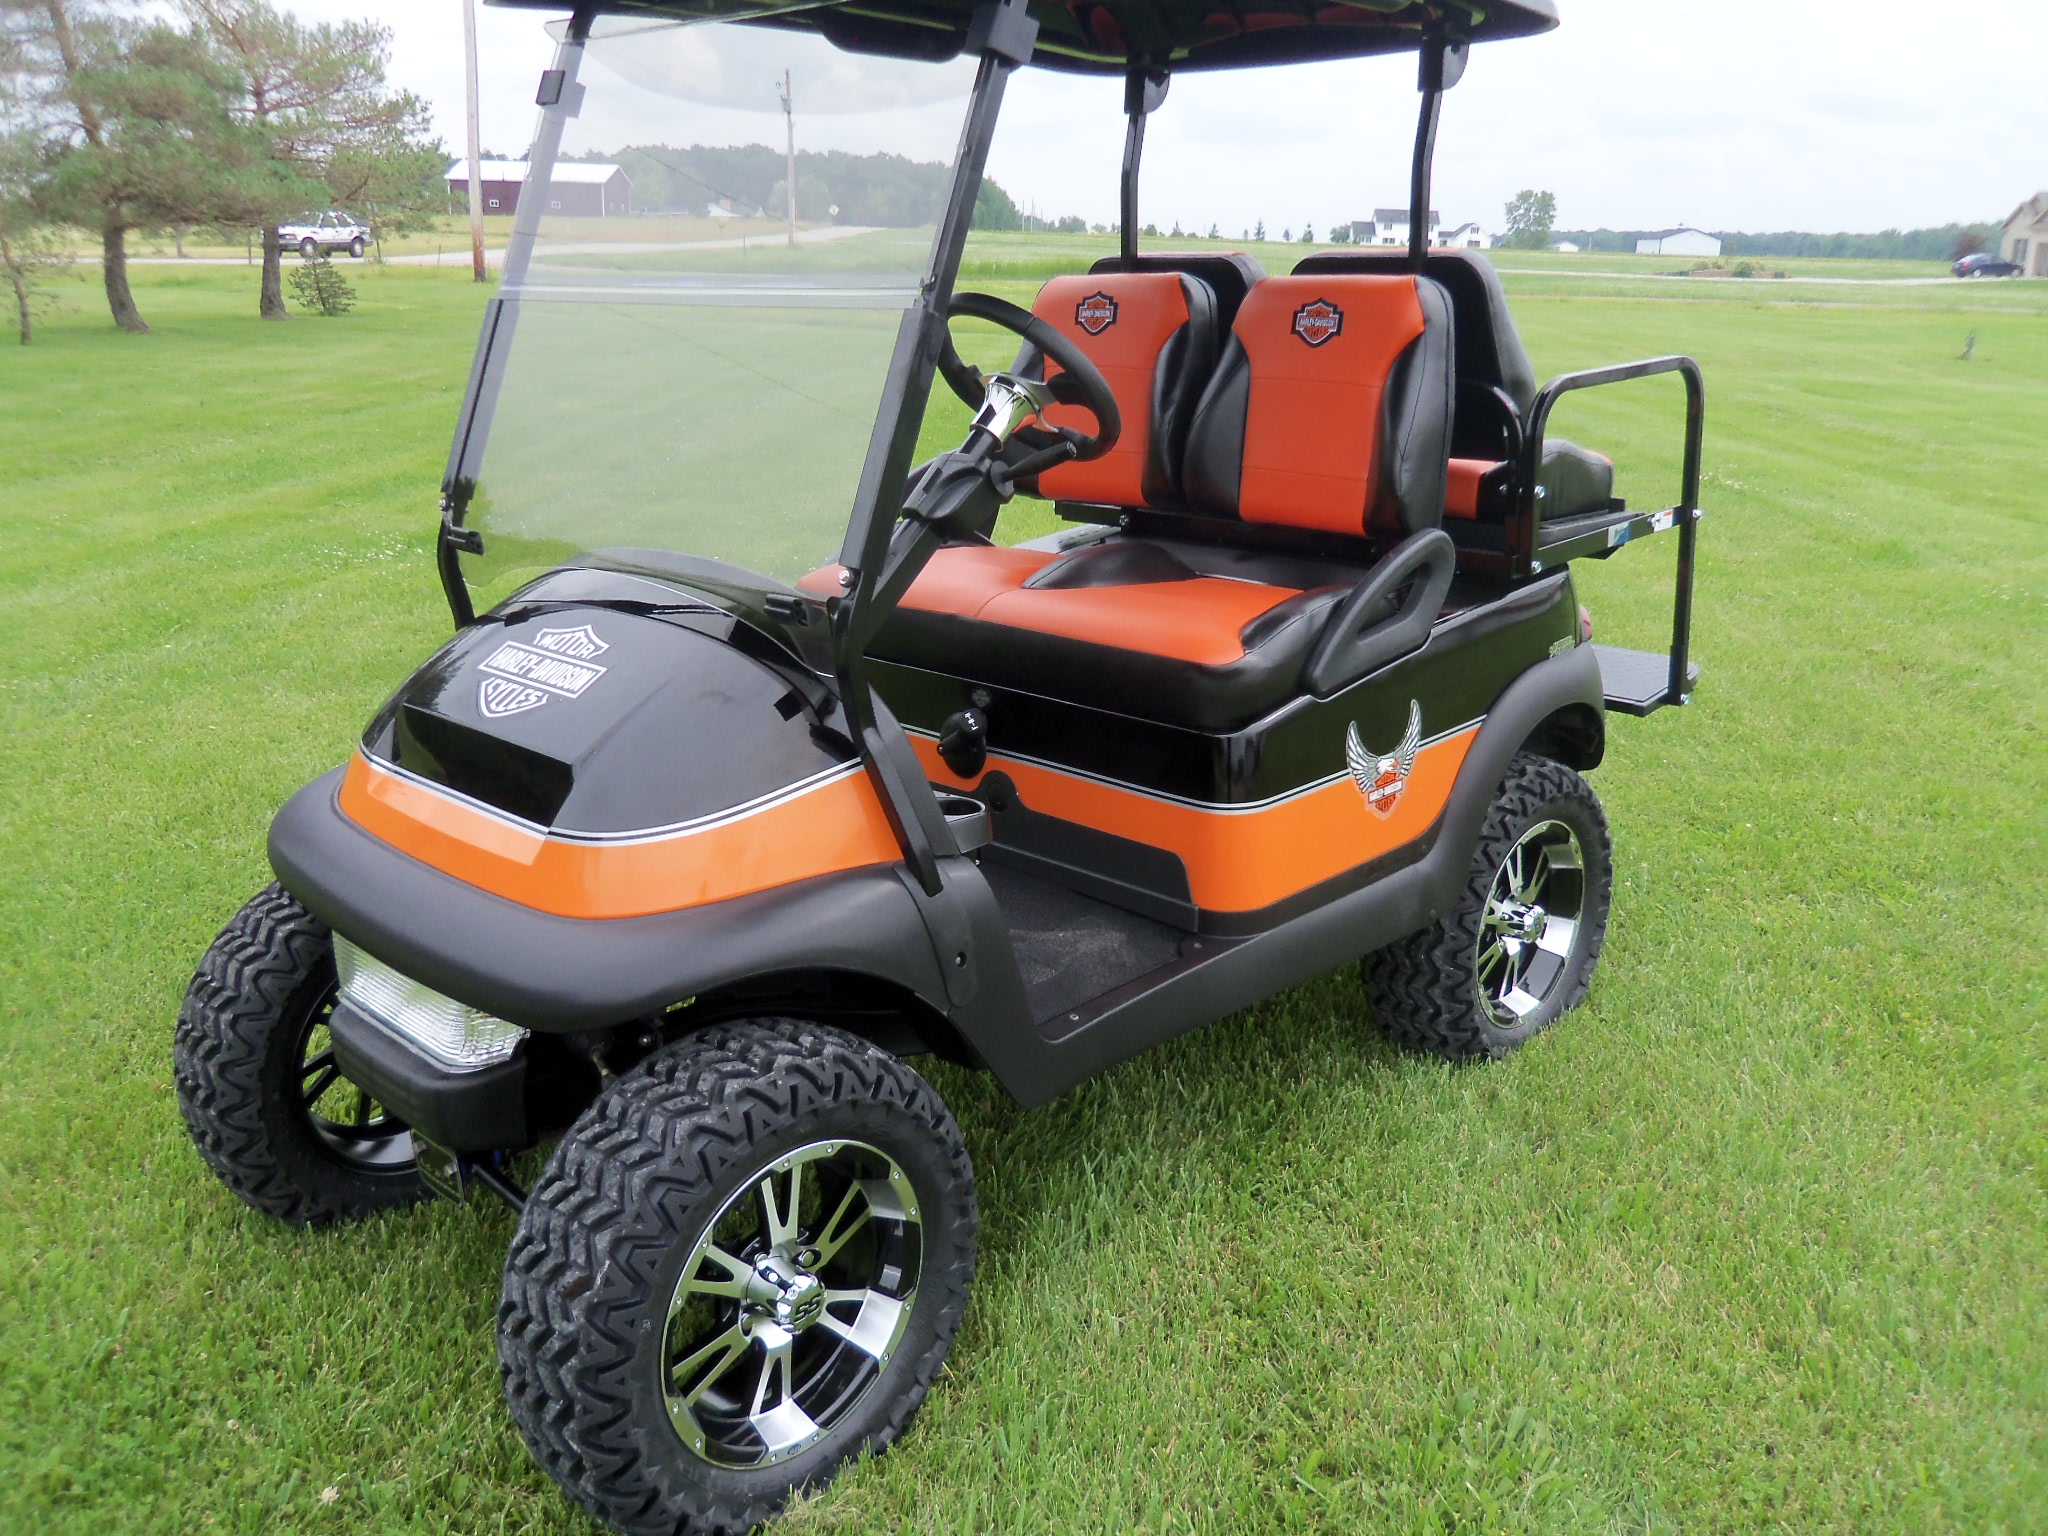 Picture of: Home Defiance Oh Golf Carts And Mowers In Oh Aftershock Carts And Mowers